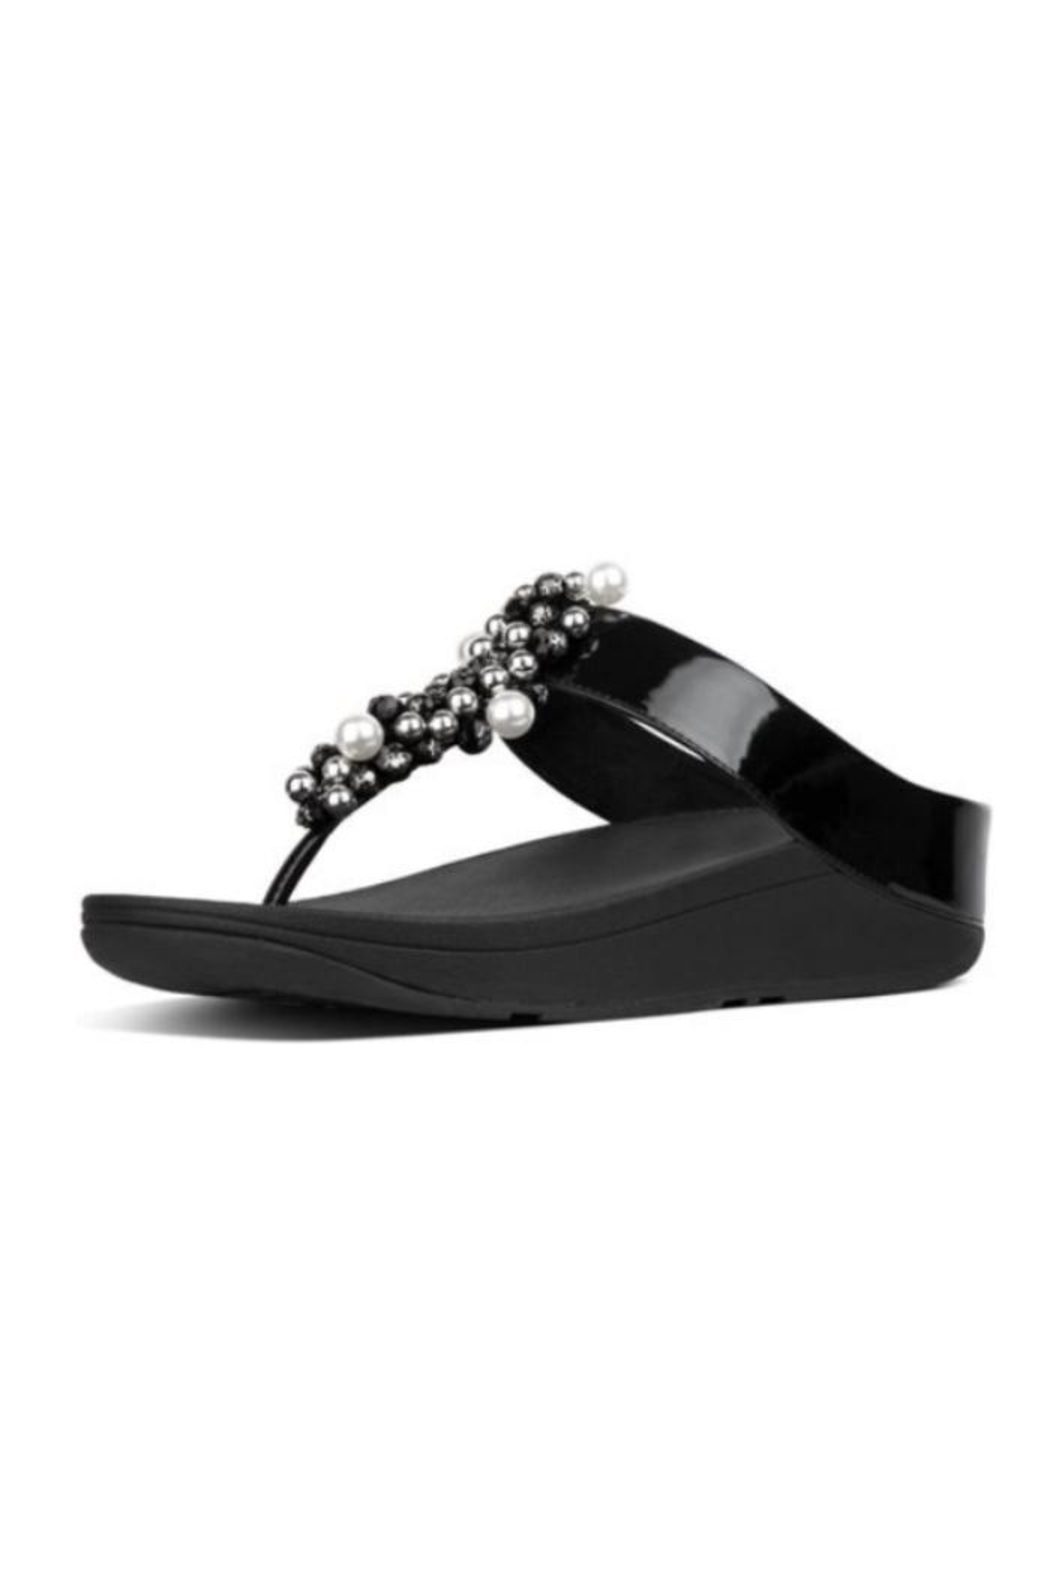 9e790f89120 Fitflop deco sandal front cropped image jpg 1050x1575 Fitflop shoes foot